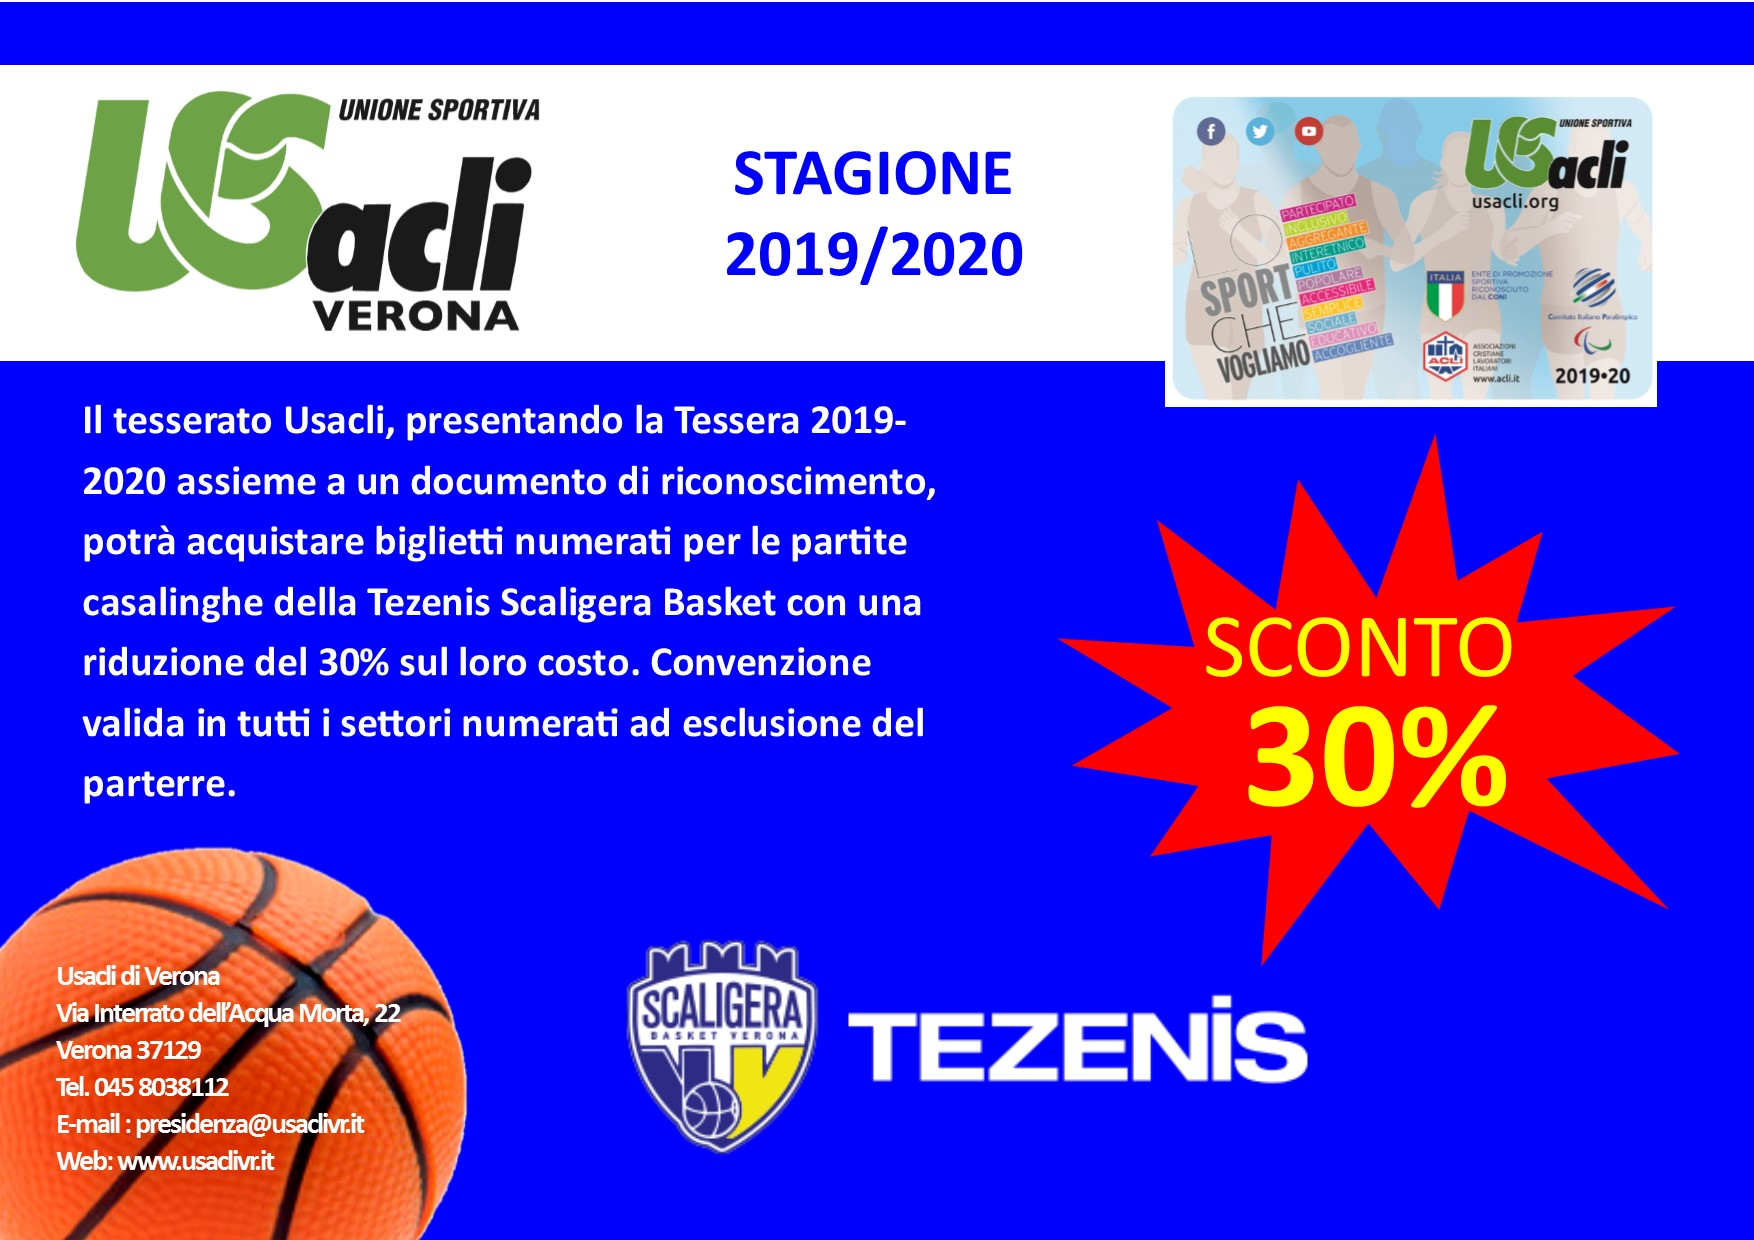 http://www.usaclivr.it/cms/wp-content/uploads/2019/10/Convenzione-Basket-2019-2020.jpg